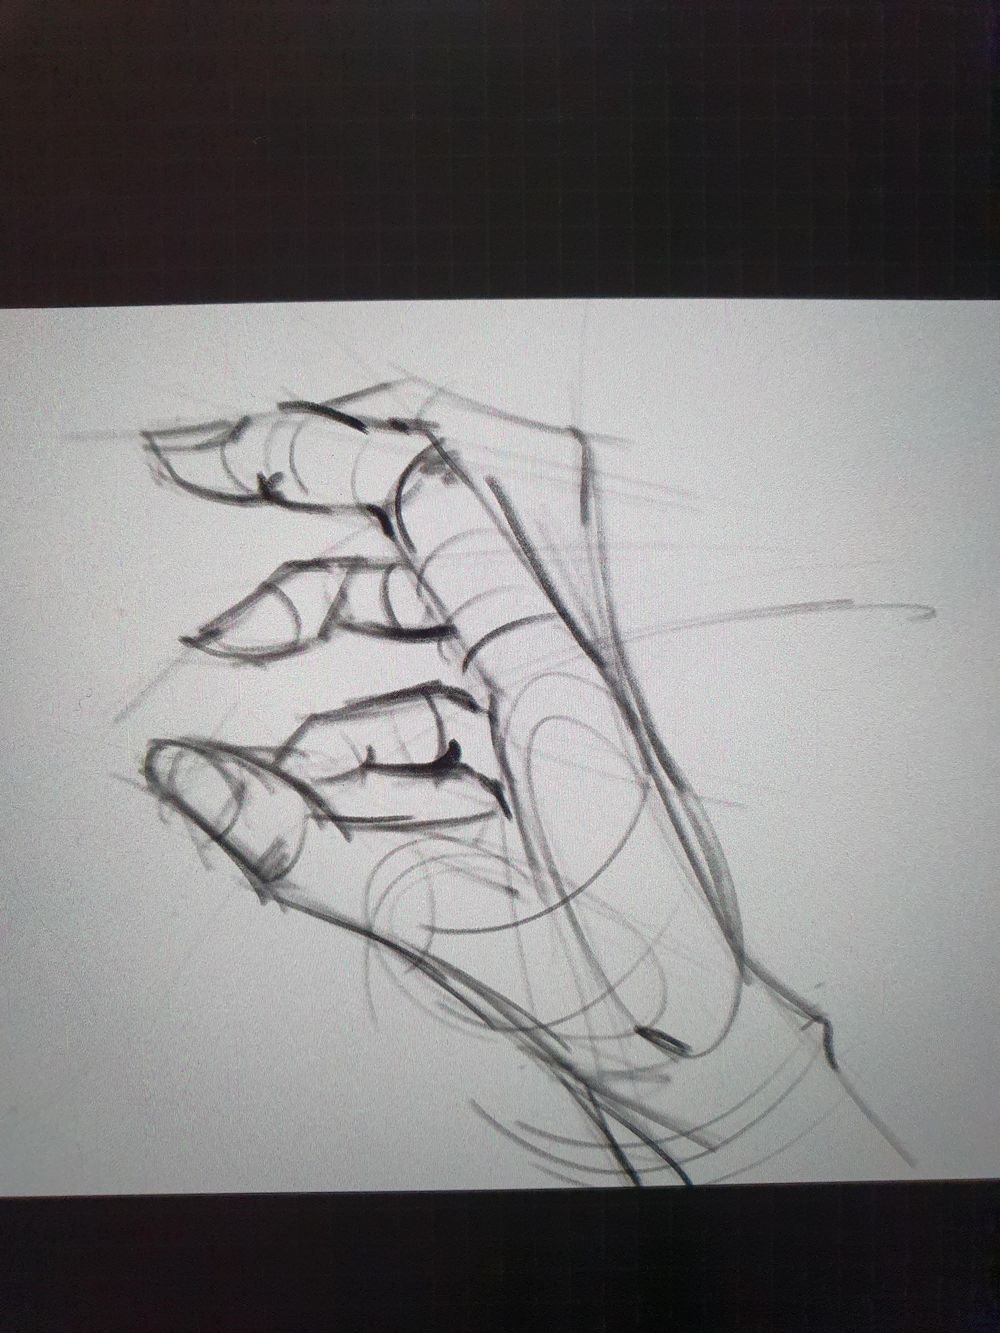 Drawing Session - image 4 - student project